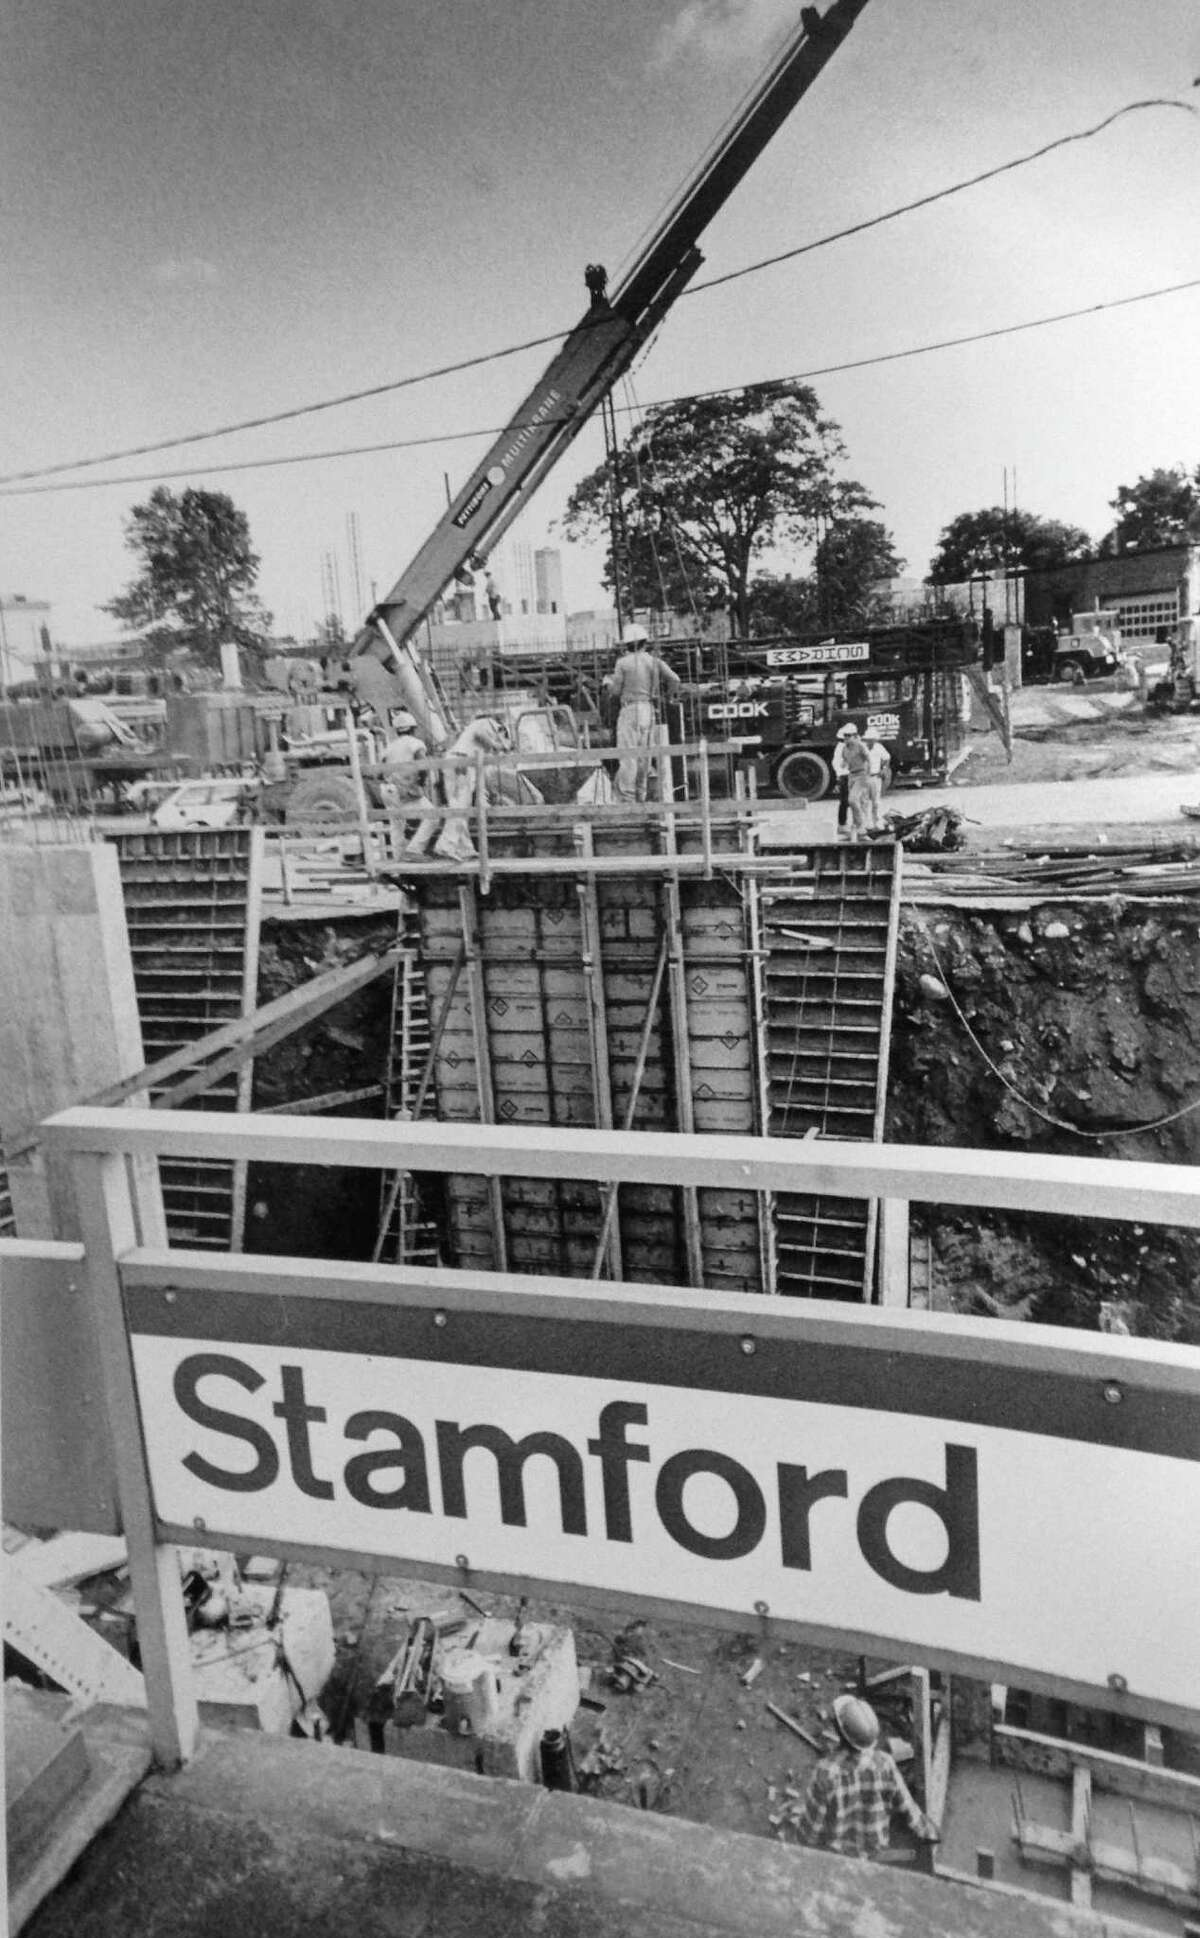 The Stamford train station and parking garage have had structural problems since their initial construction in 1984, when poor quality work caused safety concerns.